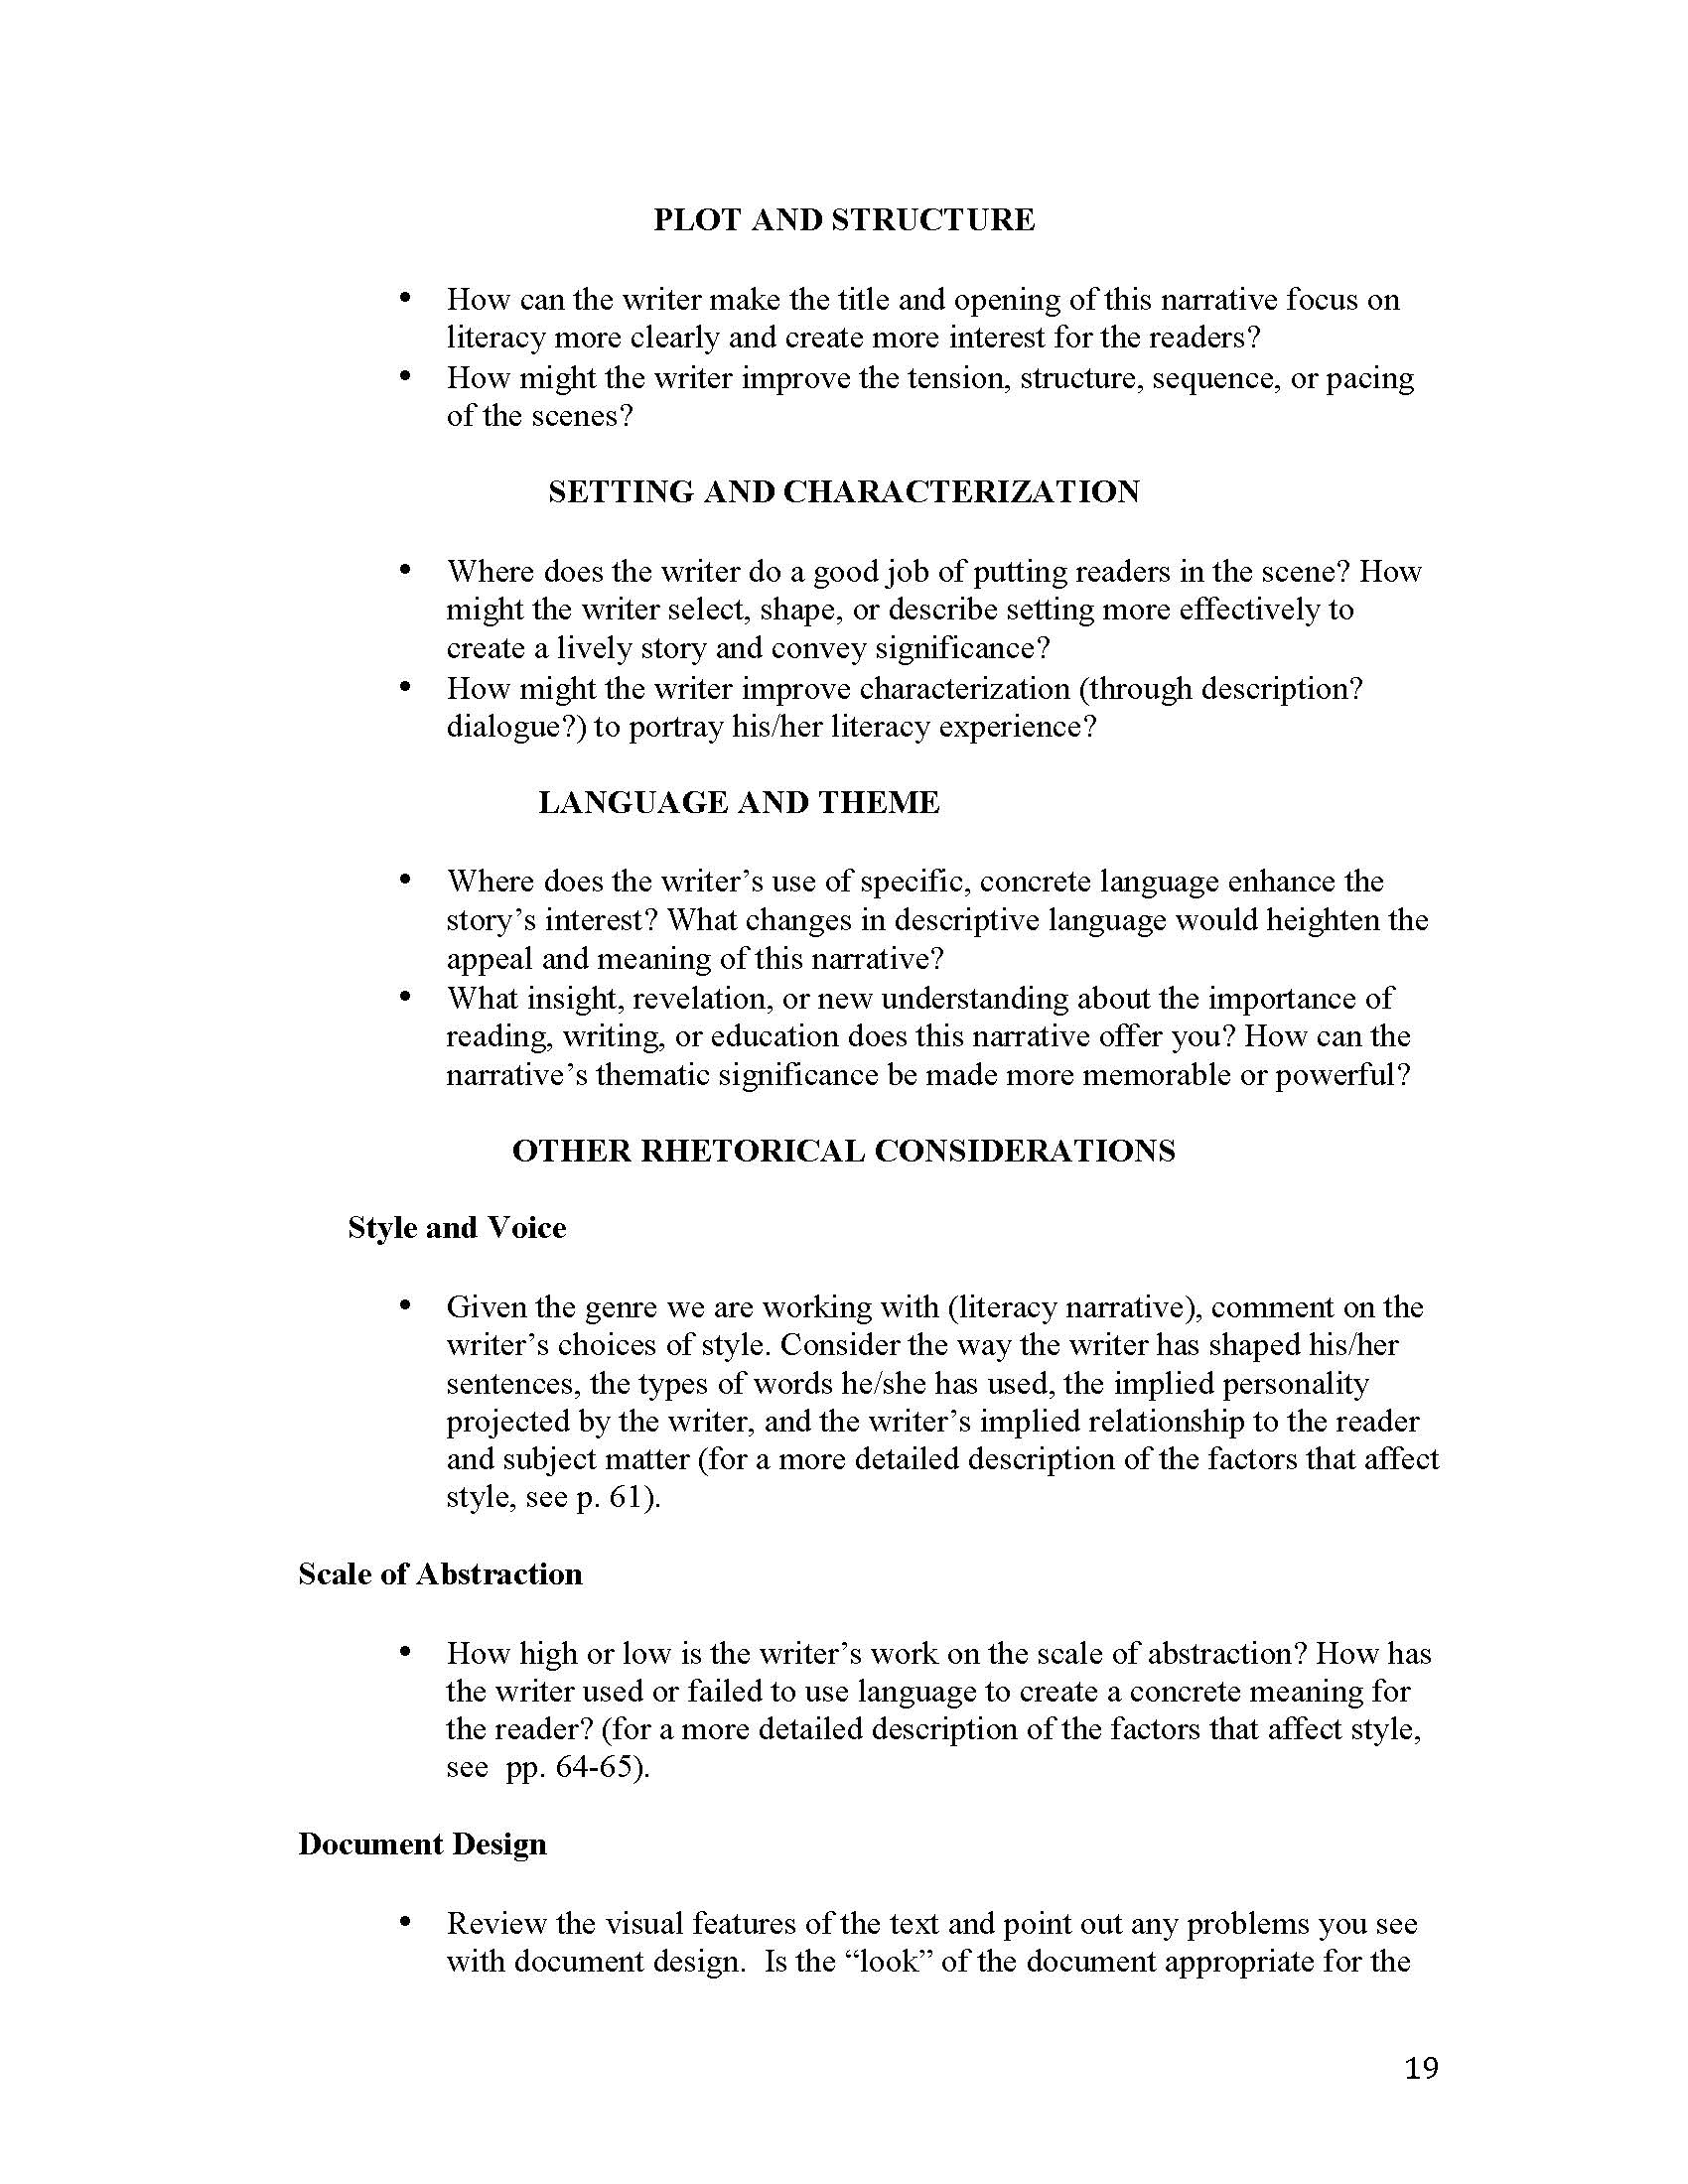 023 How To Start Off An Argumentative Essay Example Unit 1 Literacy Narrative Instructor Copy Page 19 Striking End Of Examples Full